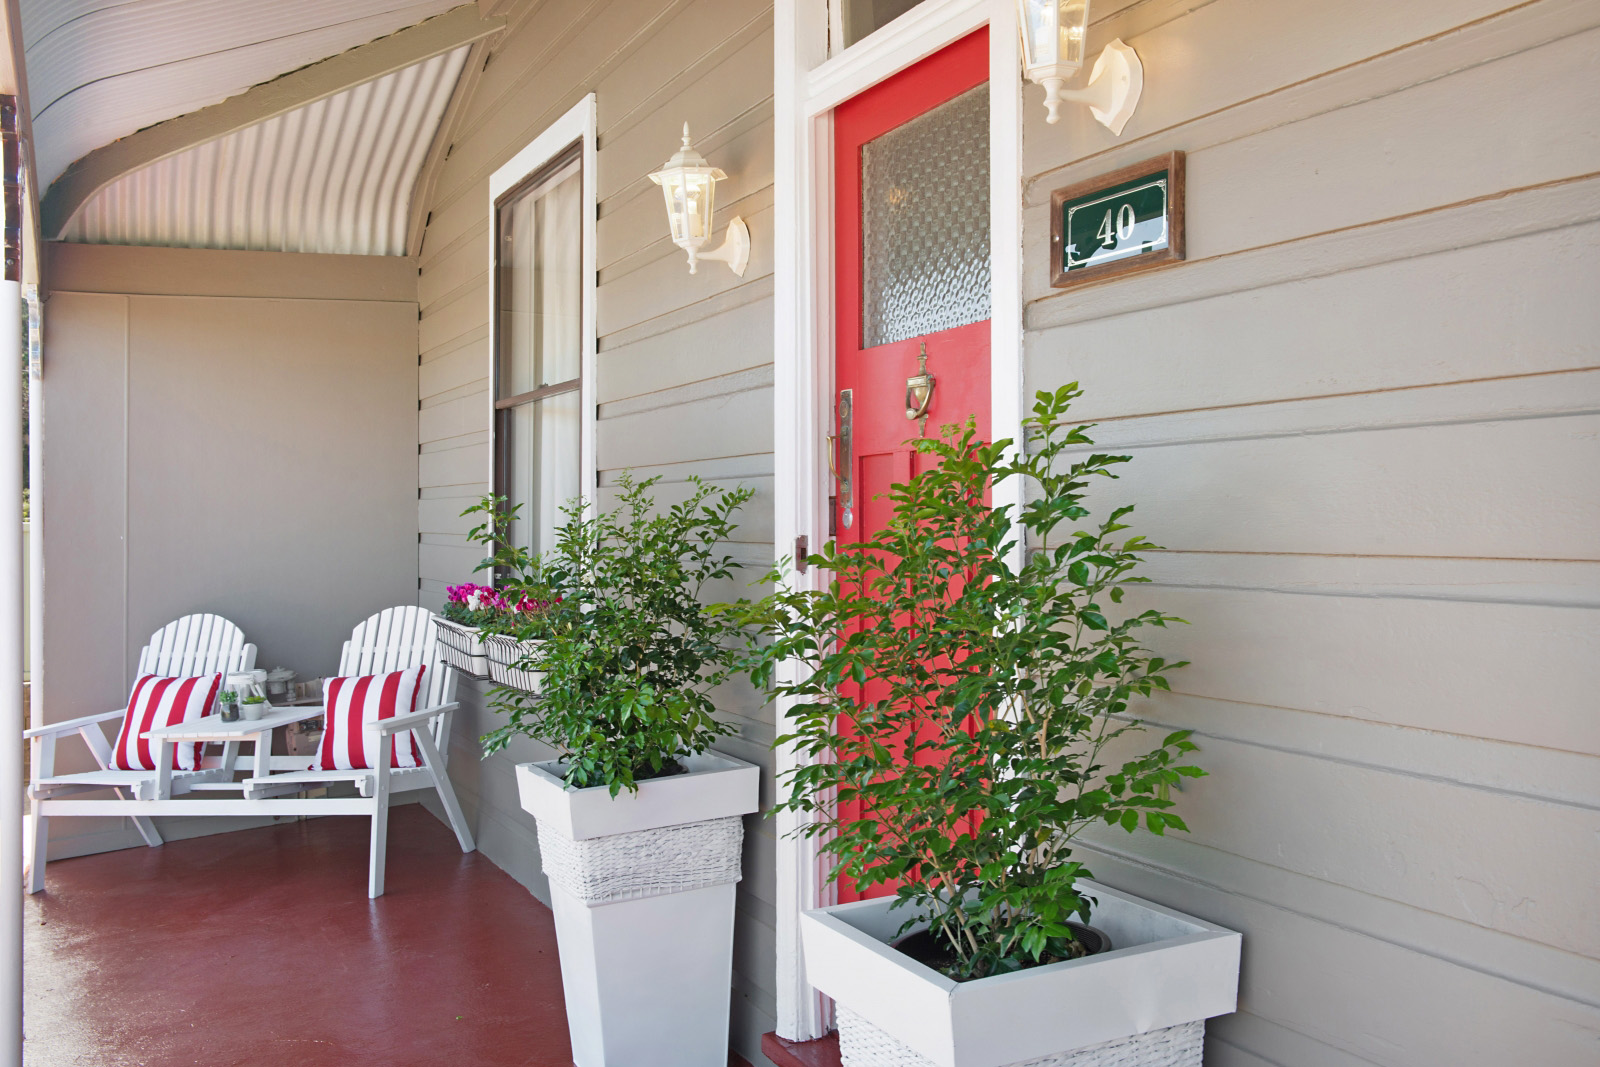 Cherie-Barber_Renovating-For-Profit_Botany_Front-Door-After